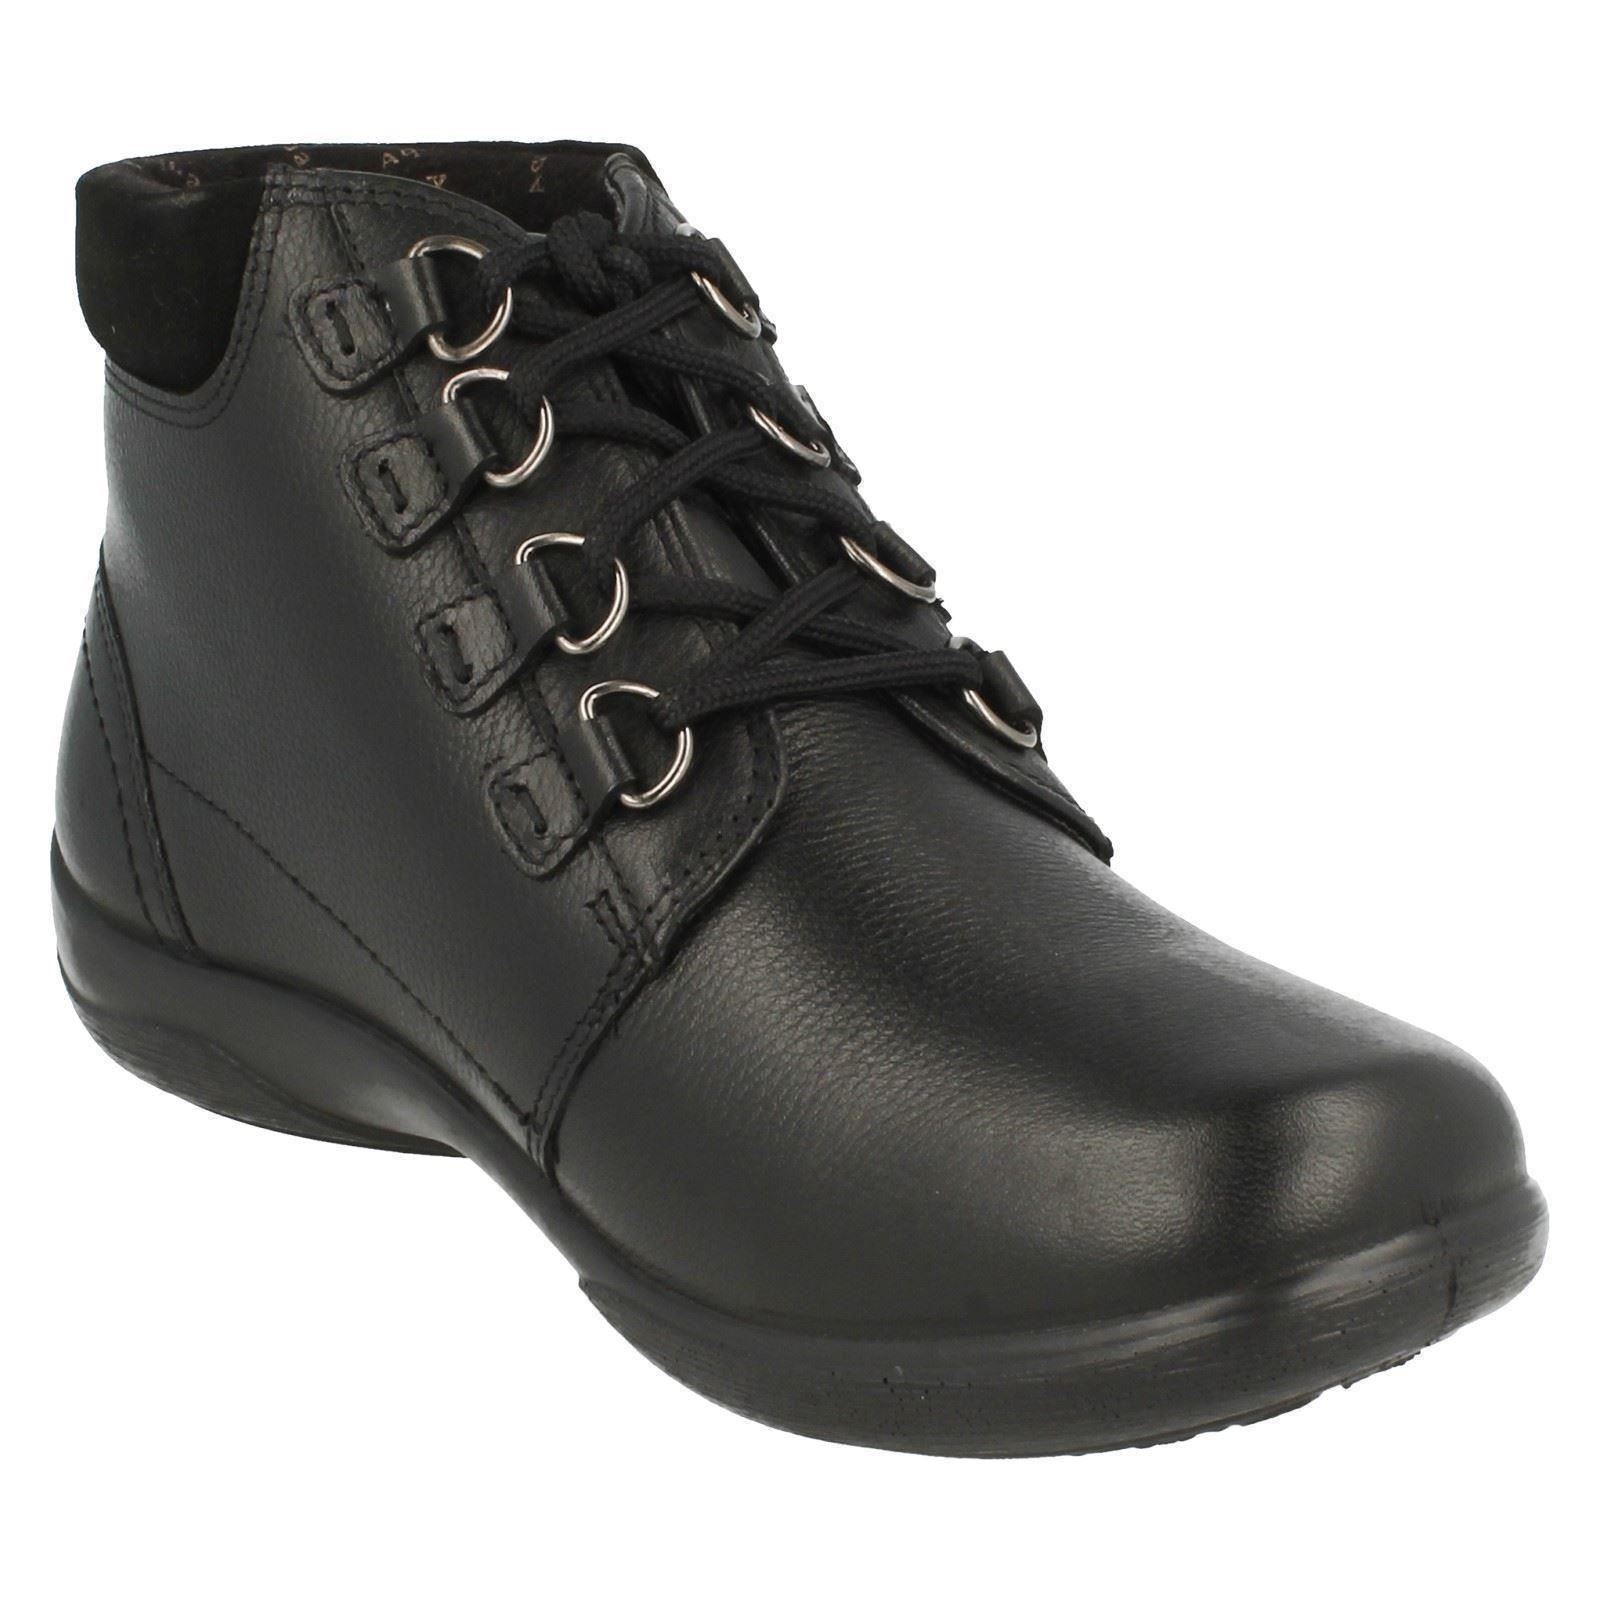 padders wide fitting waterproof leather lace up